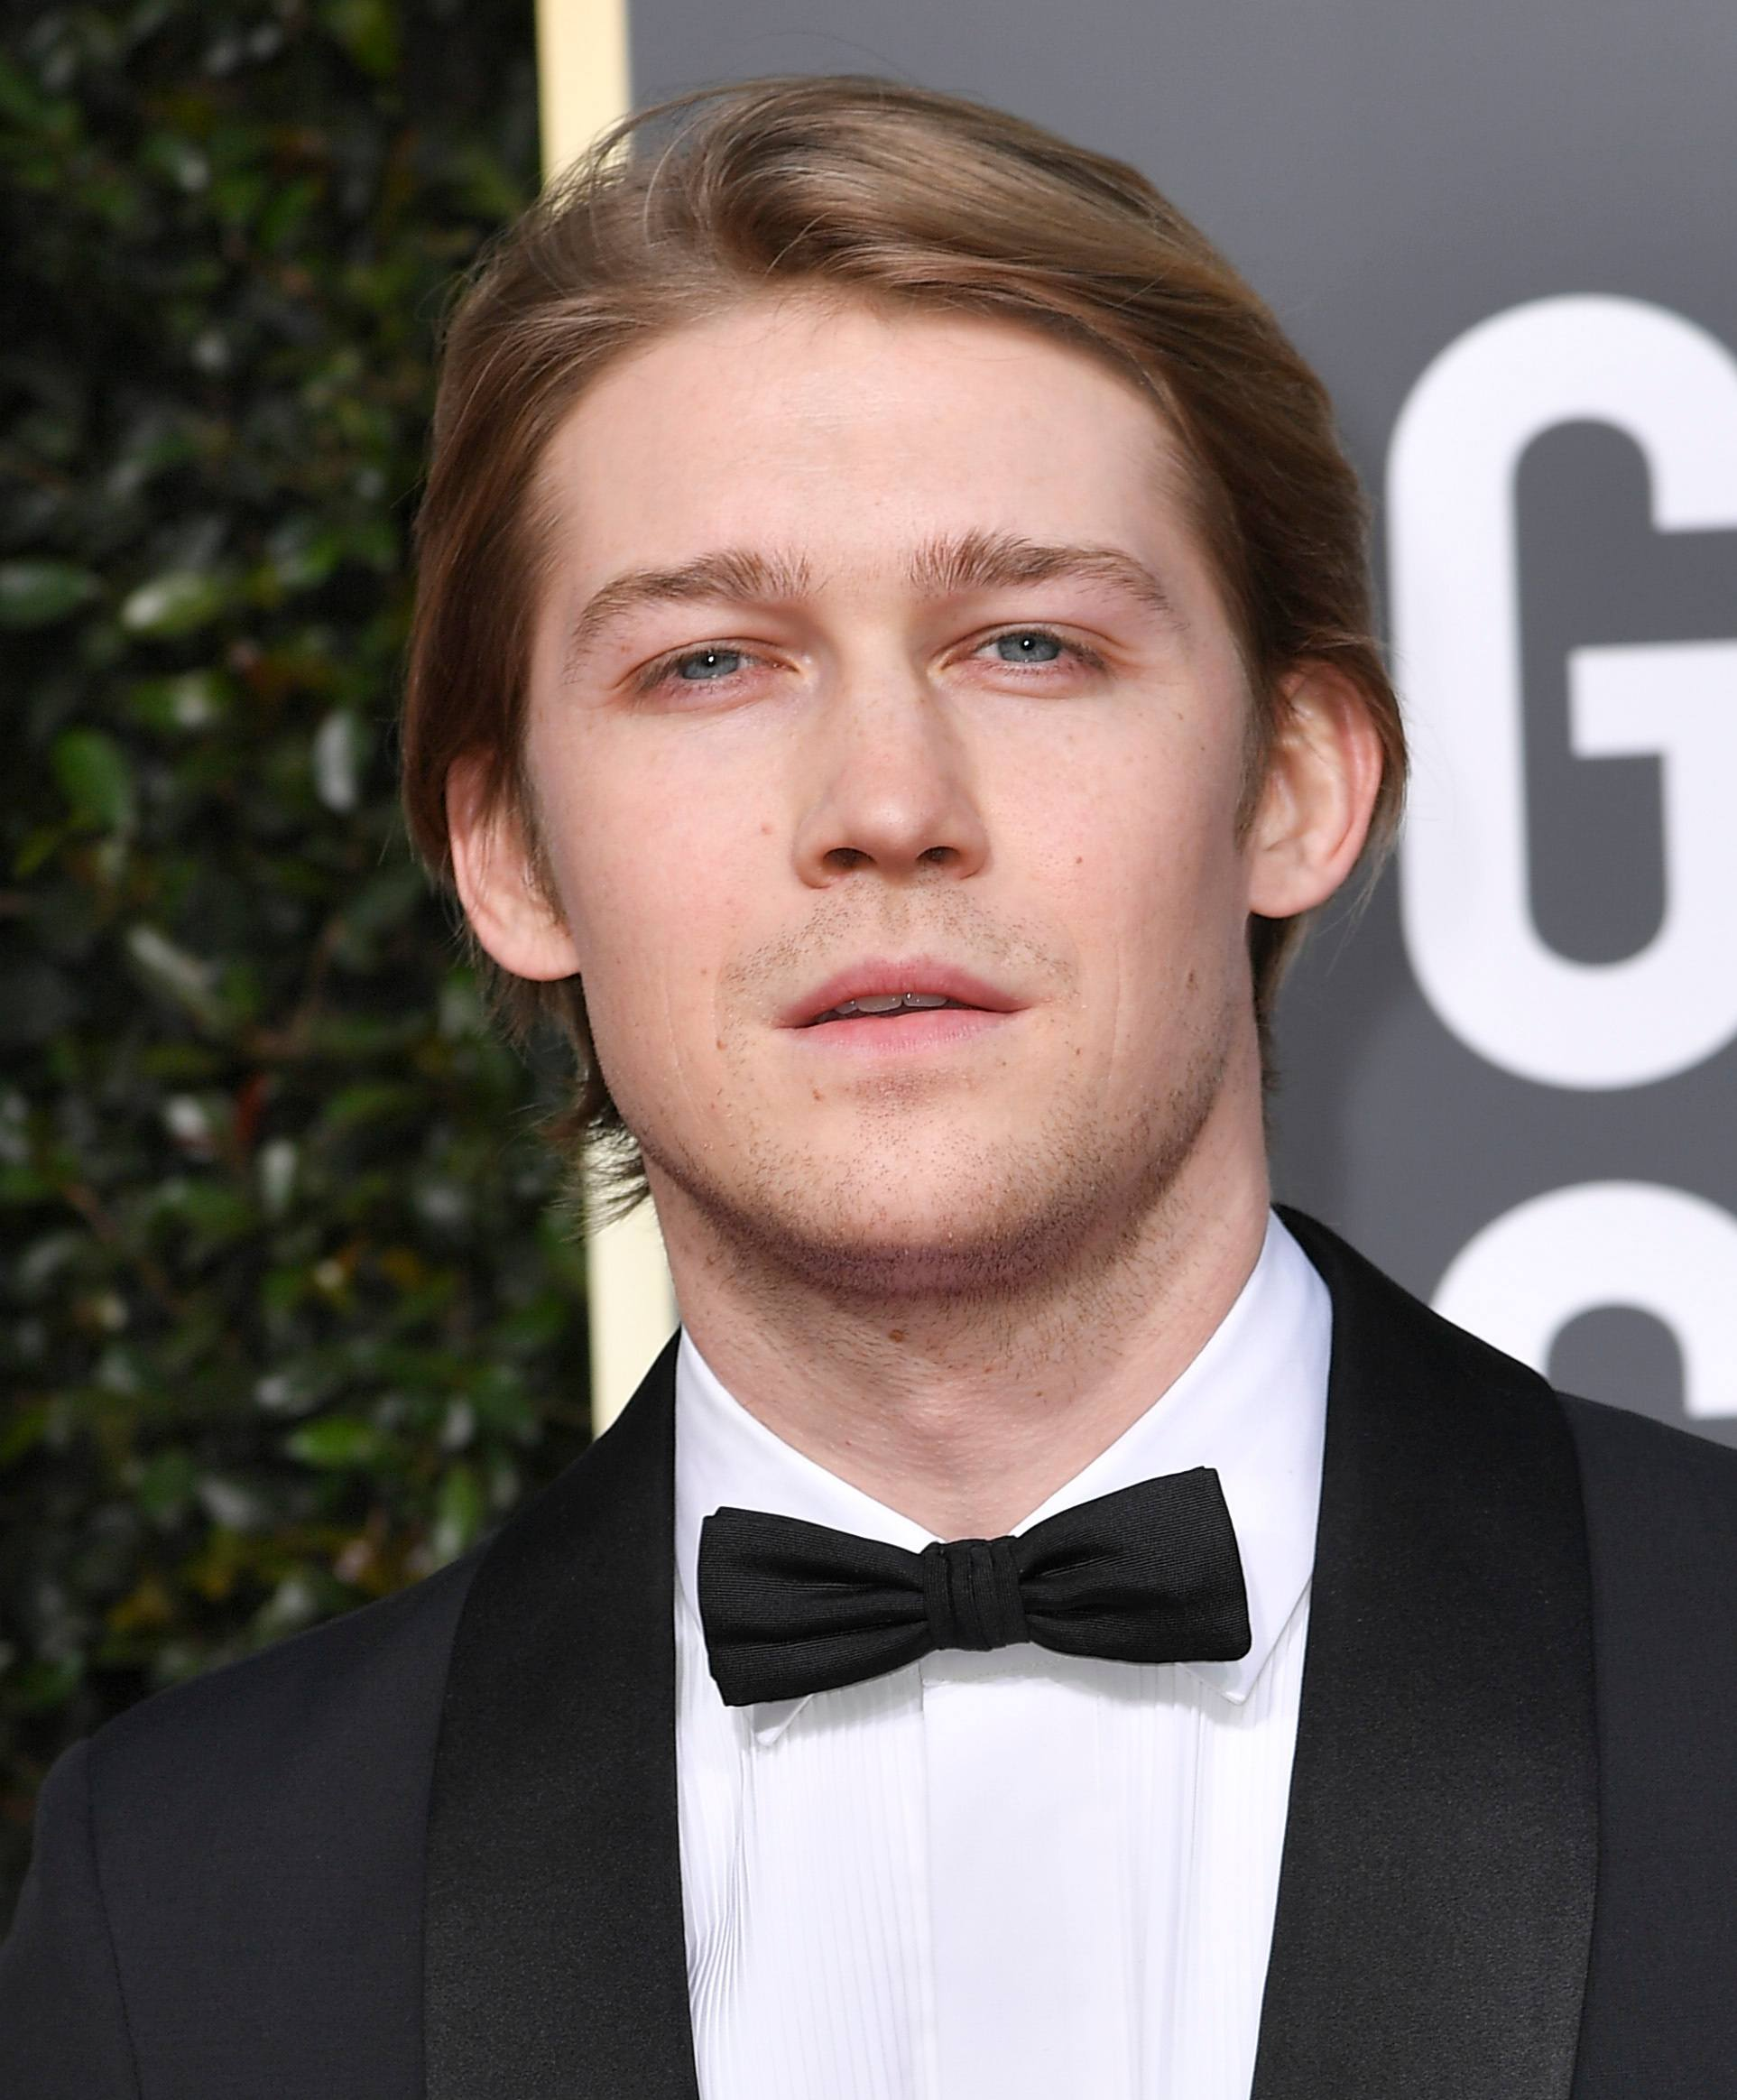 Golden Globes 2019: Close-up of Joe Alwyn with dark blonde medium length hair tucked behind his ears